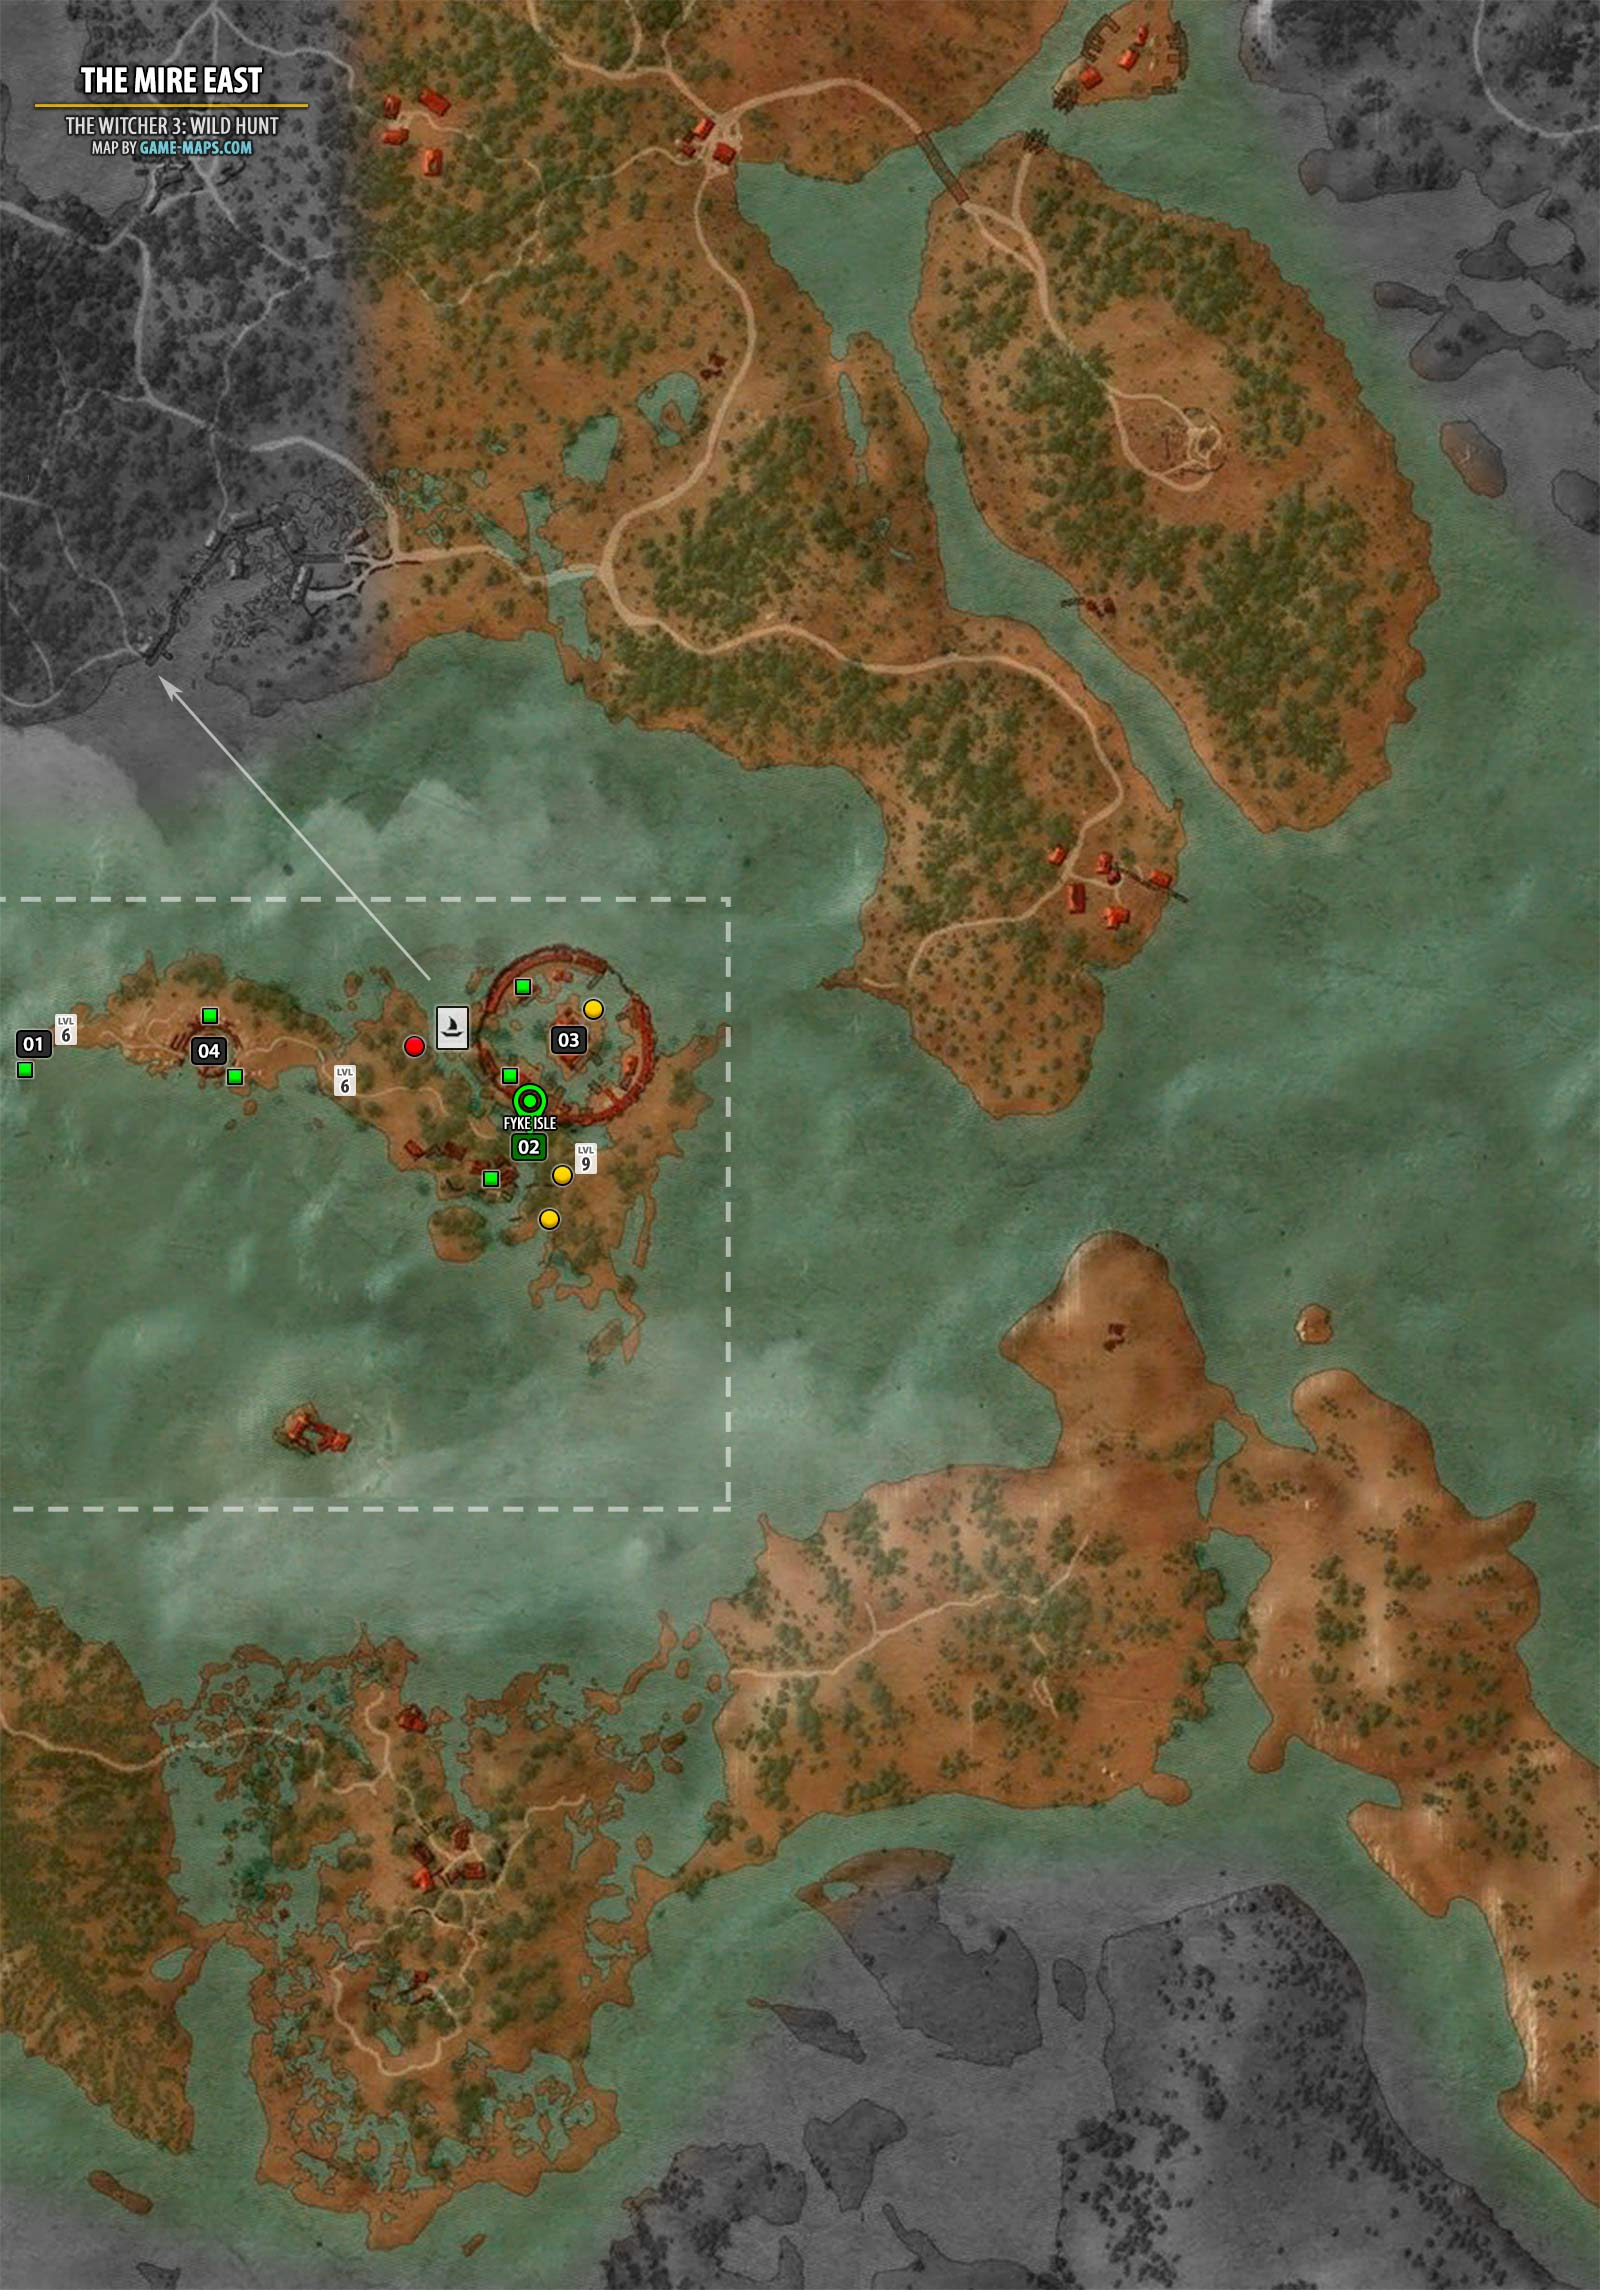 The Mire East Map The Witcher 3 Walkthrough Maps Game Guide